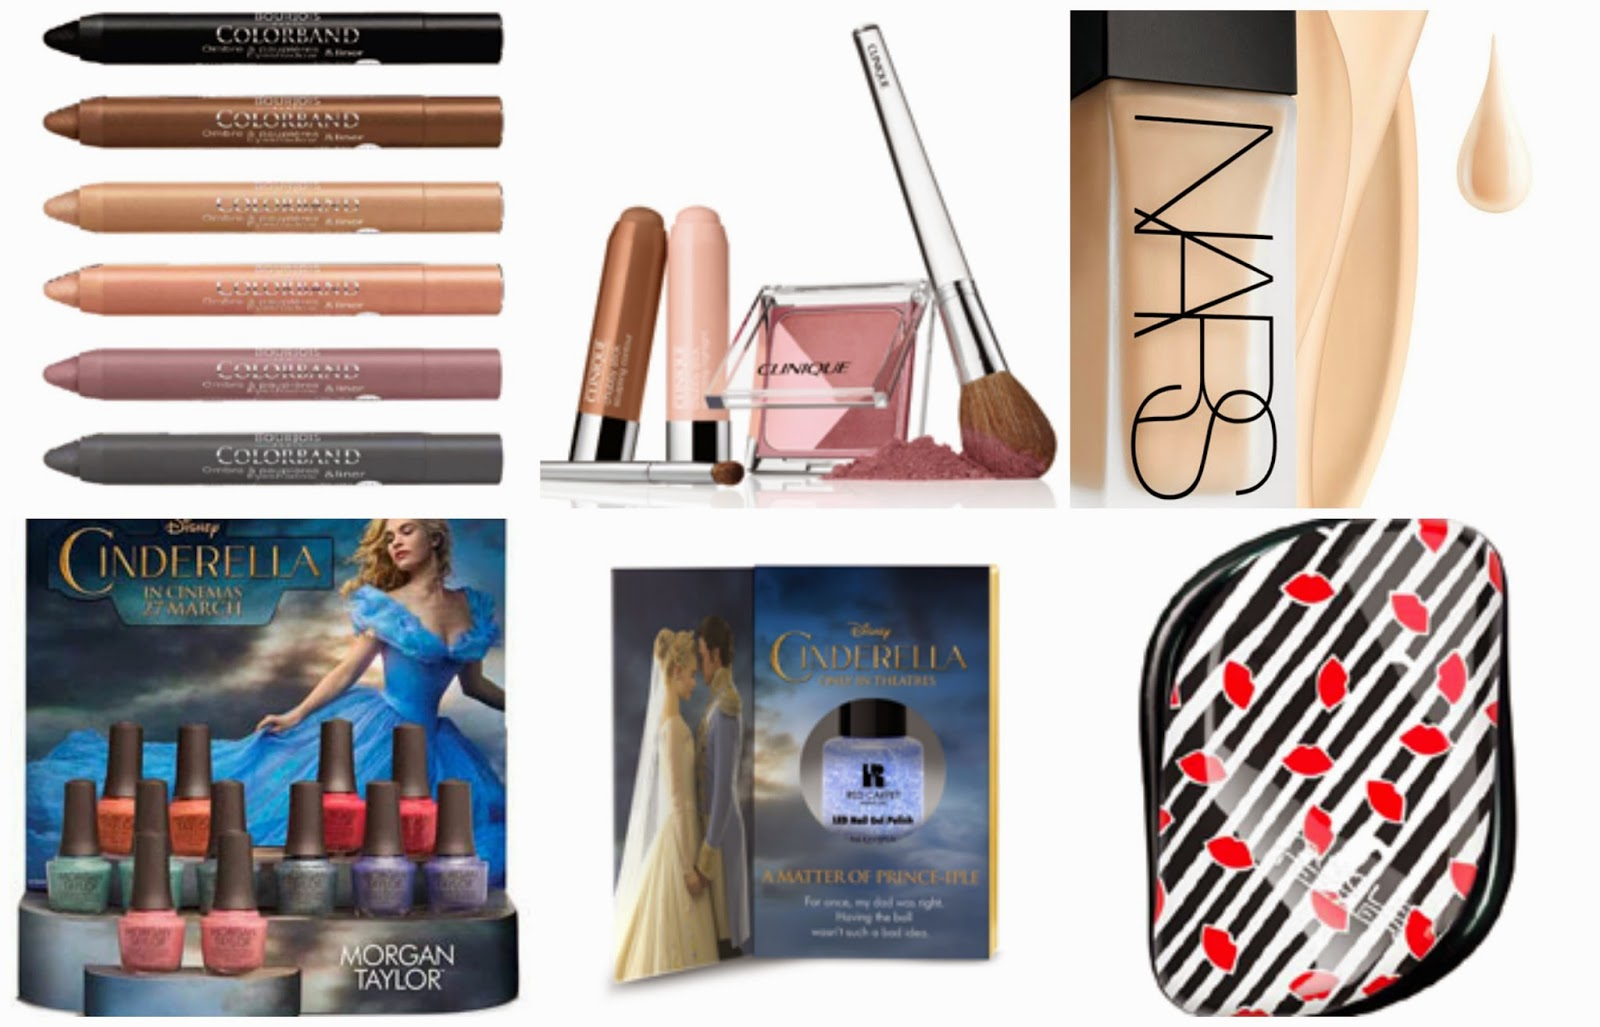 The Daily Beauty Report (19.01.15)